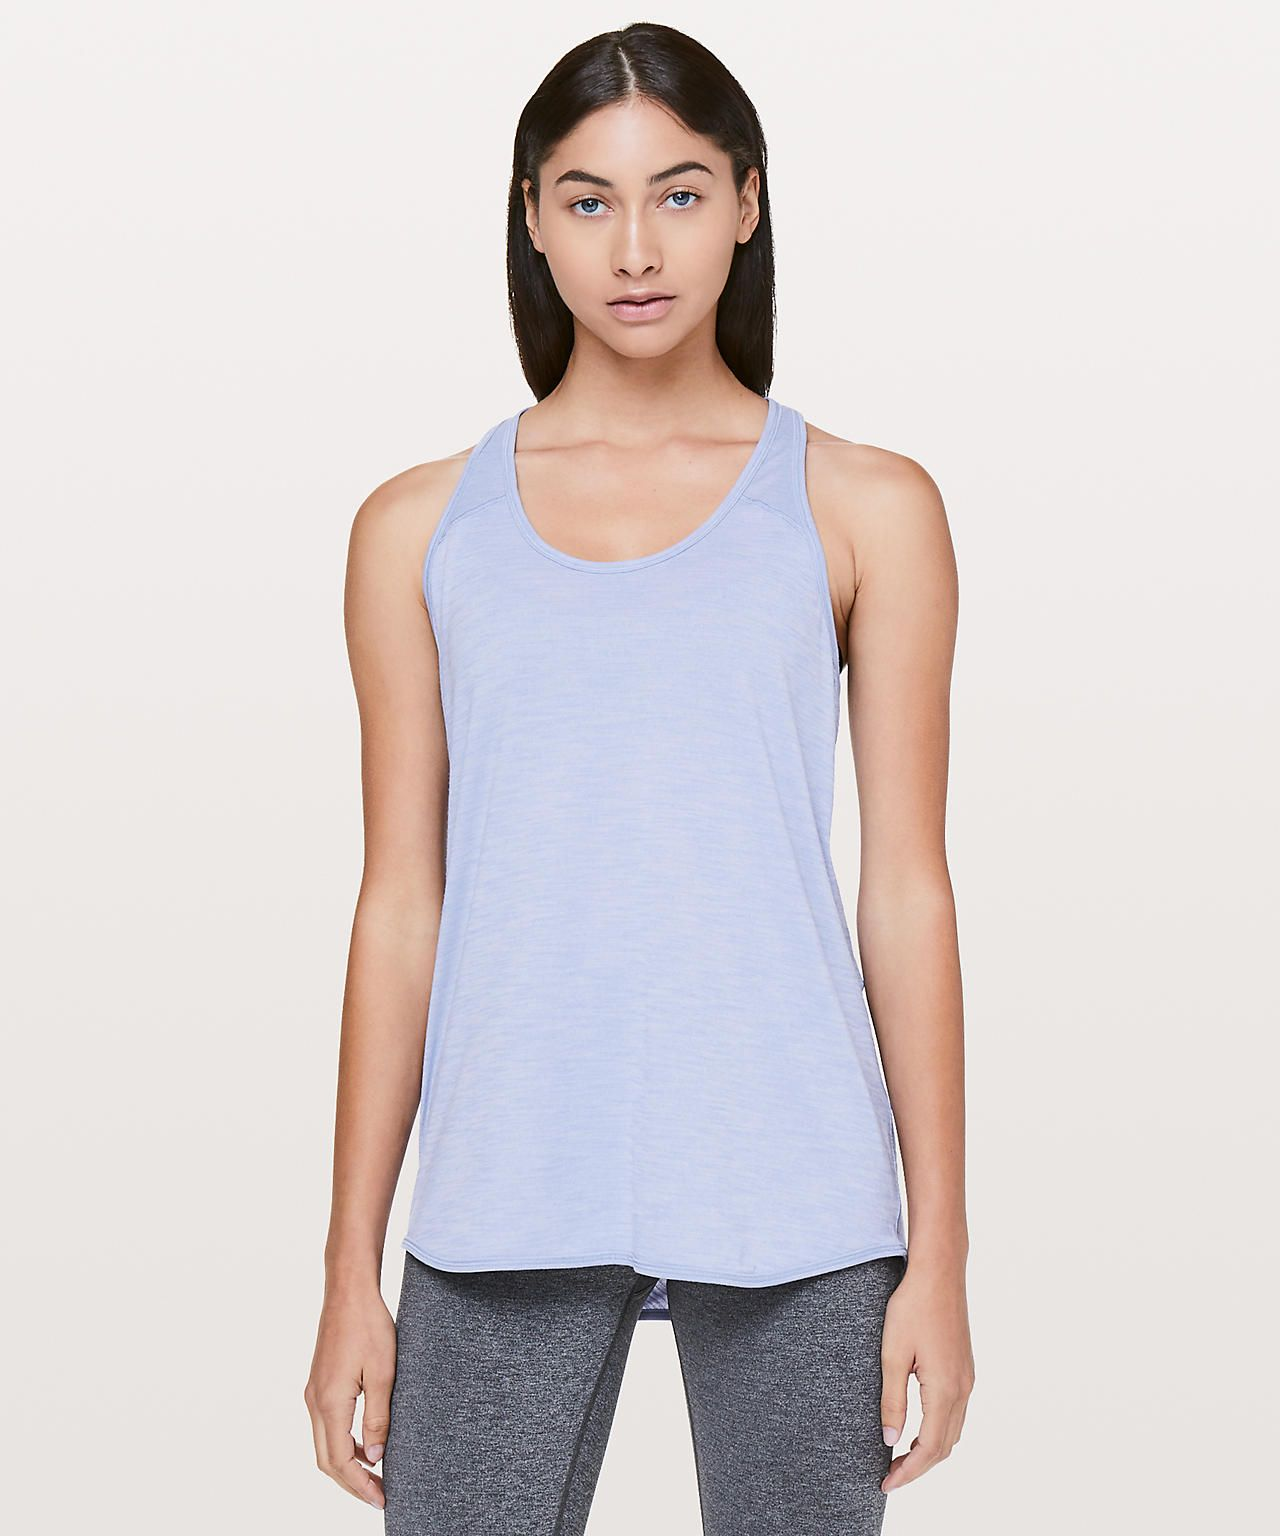 c537b7ce0d42b9 Heathered Iron Purple Yoga Tank